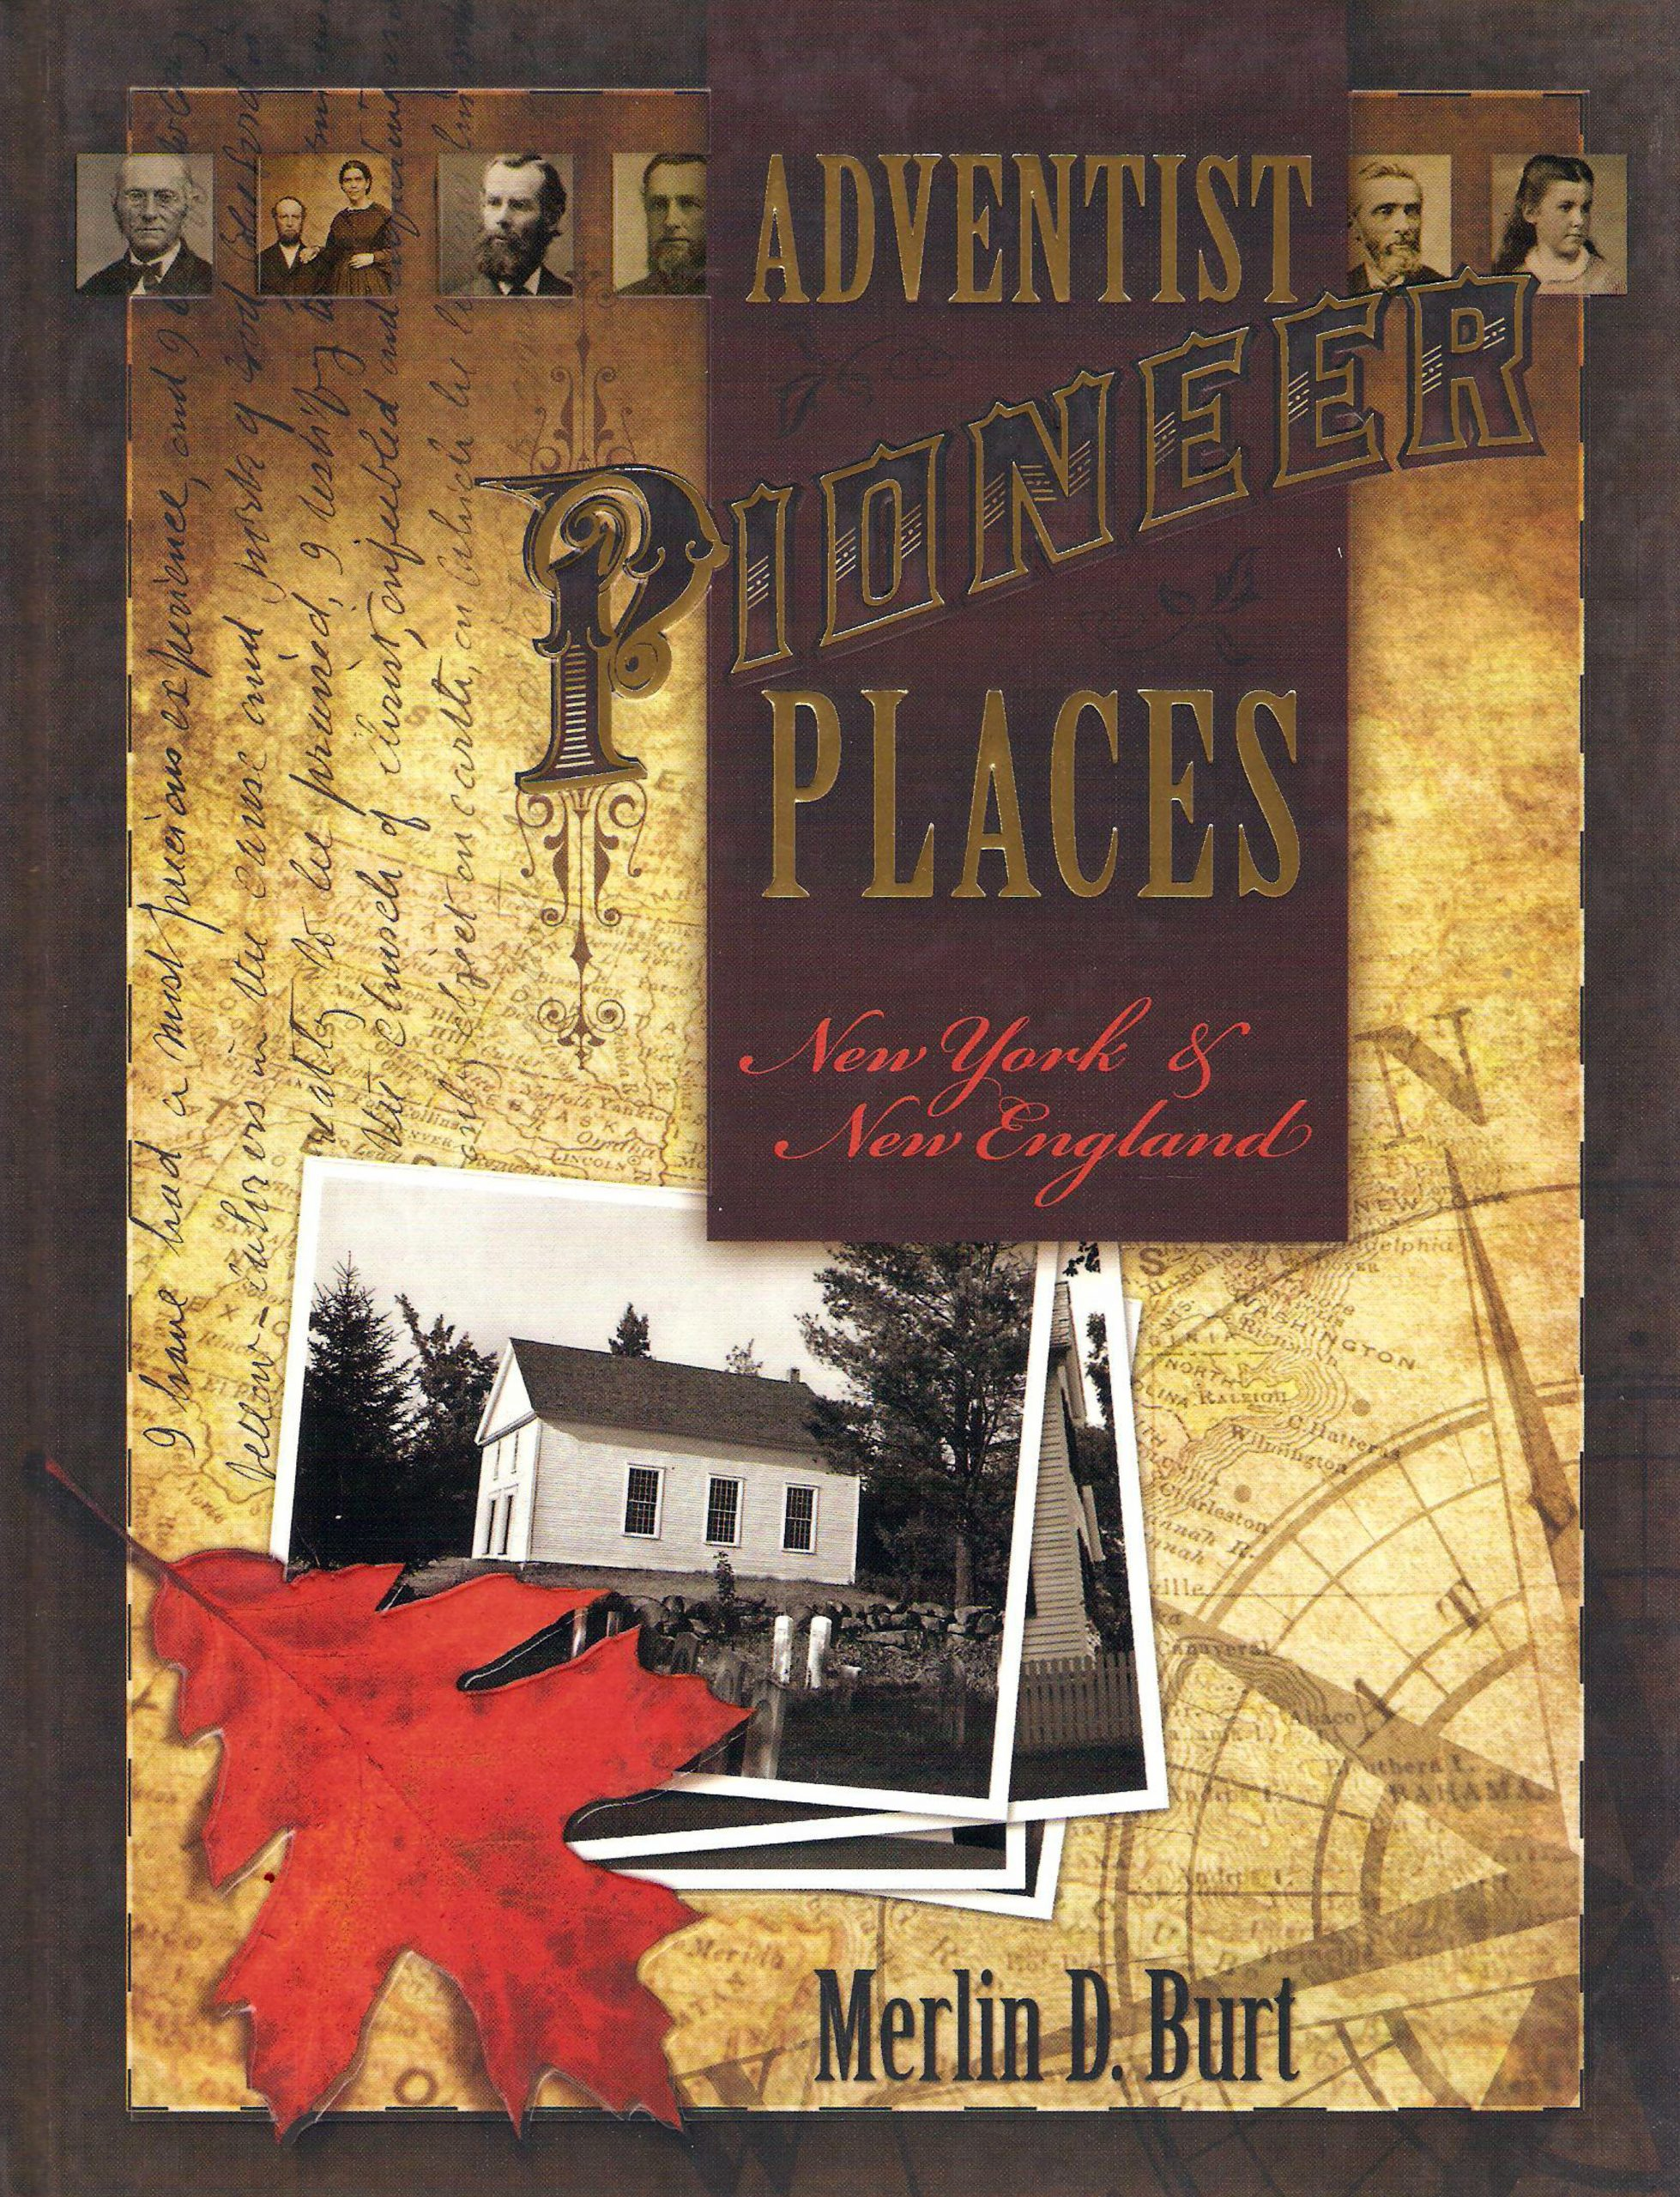 Adventist Pioneer Places